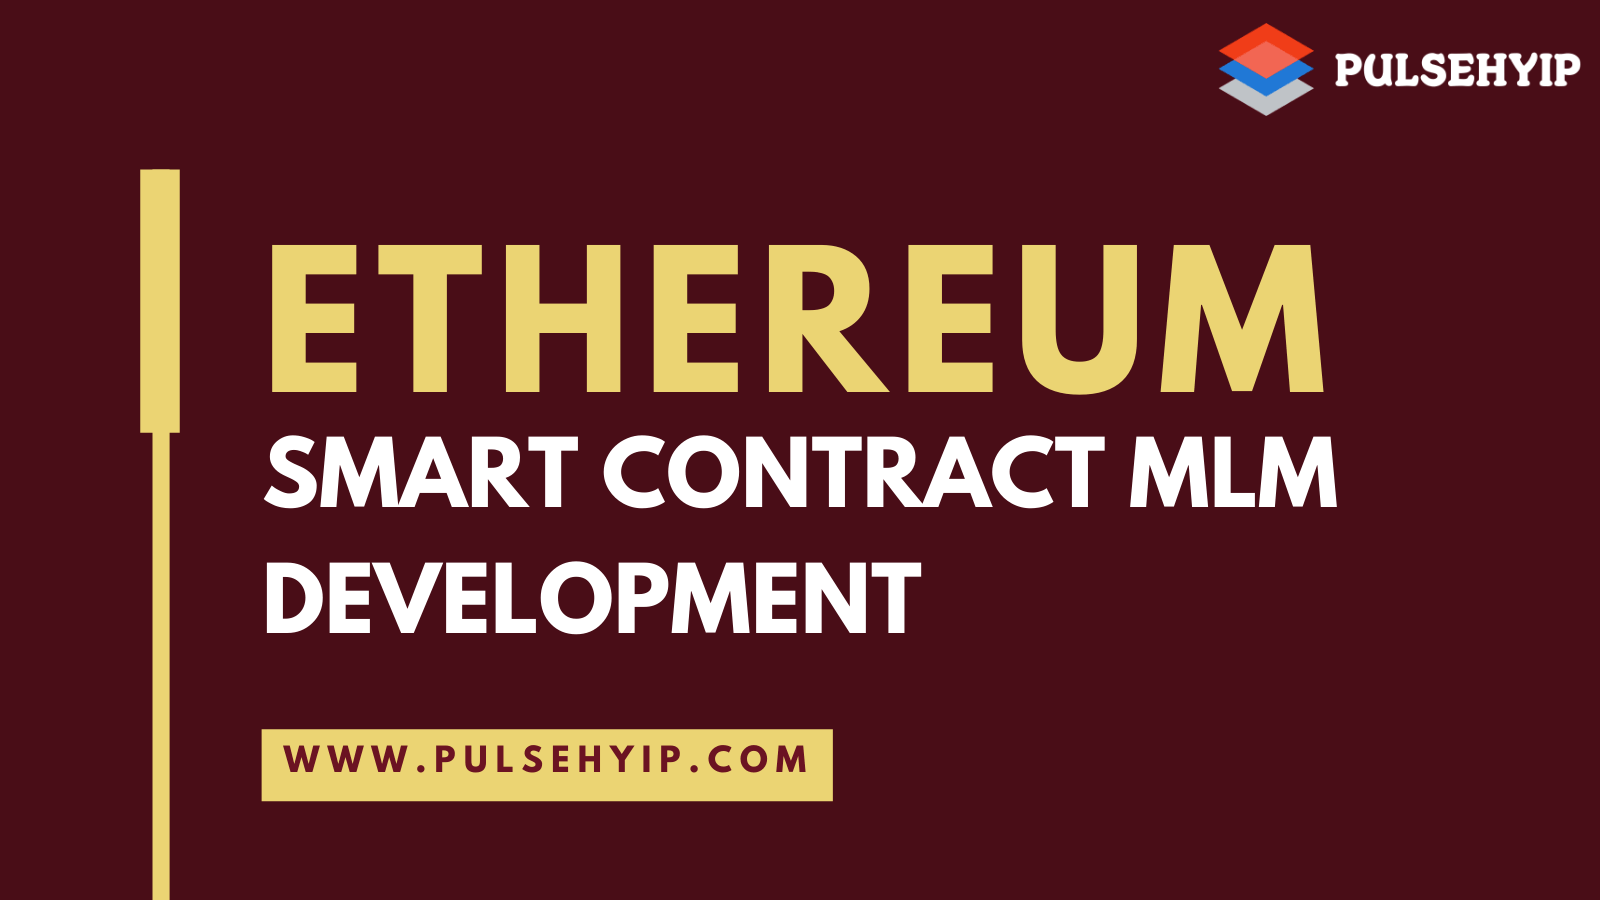 LOOKING TO BUILD AN ETHEREUM SMART CONTRACT MLM SOFTWARE? HERE IS THE COMPREHENSIVE GUIDE 2021